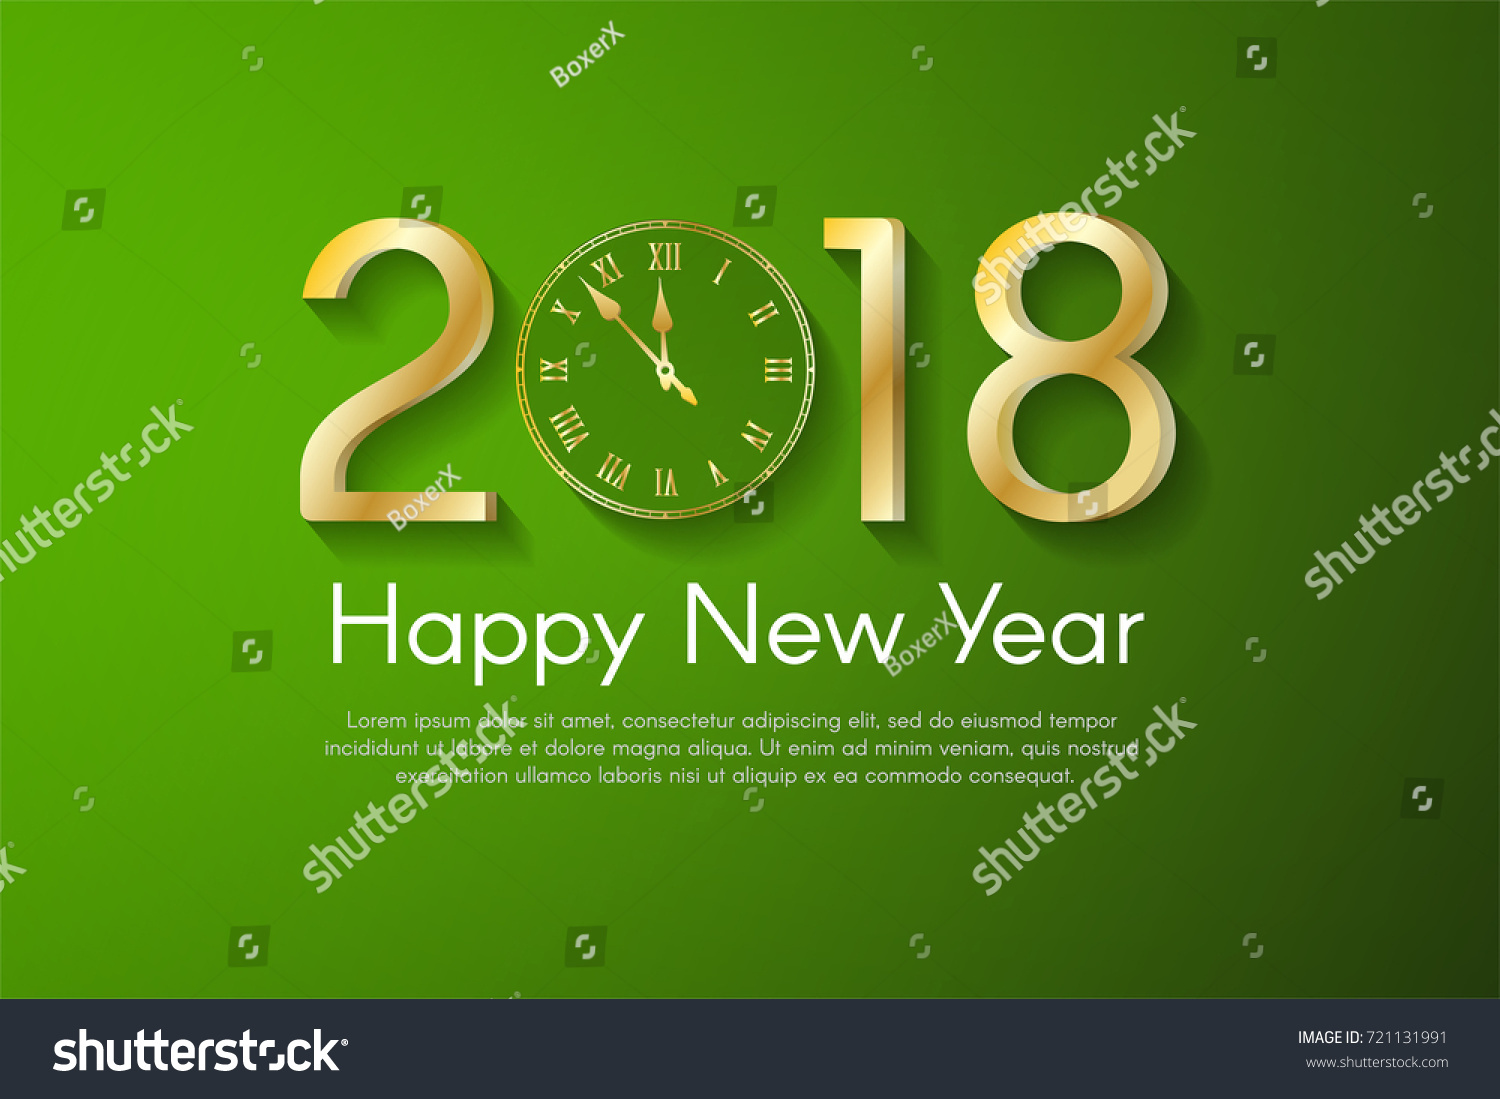 golden new year 2018 on green background vector greeting card illustration with golden numbers and